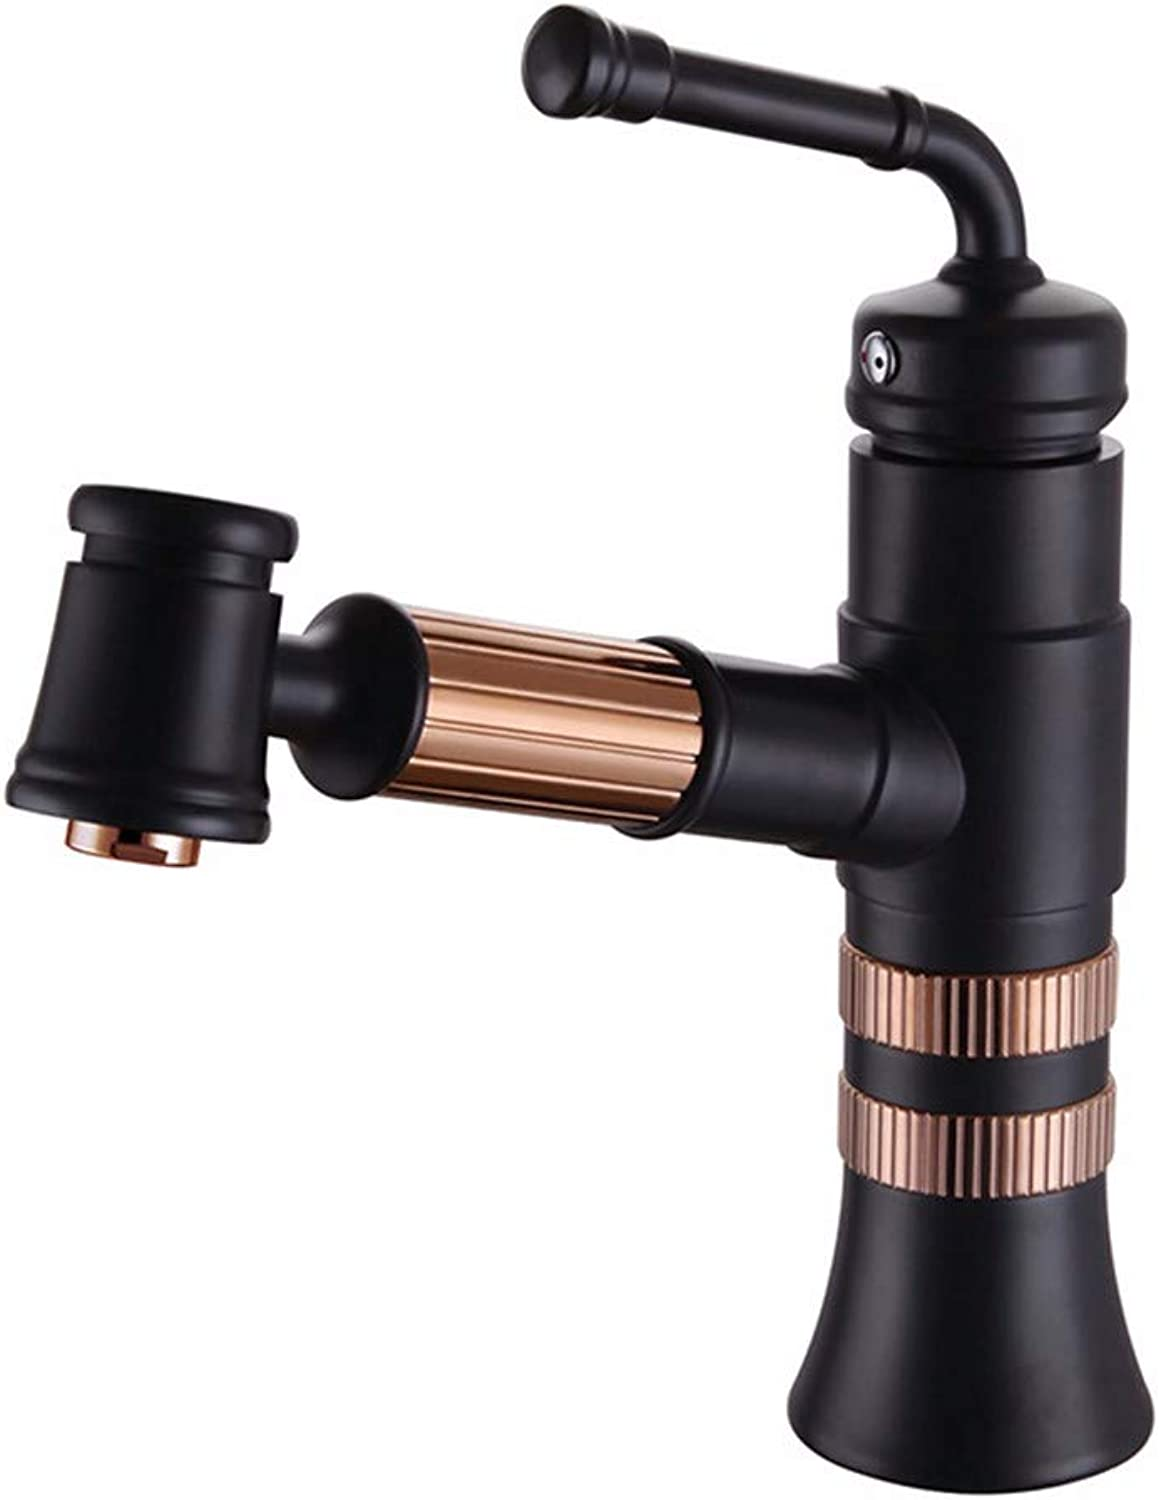 FT-13 Hot and Cold Faucet Retro Faucet Kitchen Bathroom Faucet European Style Pull Basin Faucet Black hot and Cold Above Counter Basin Faucet, Black + pink gold